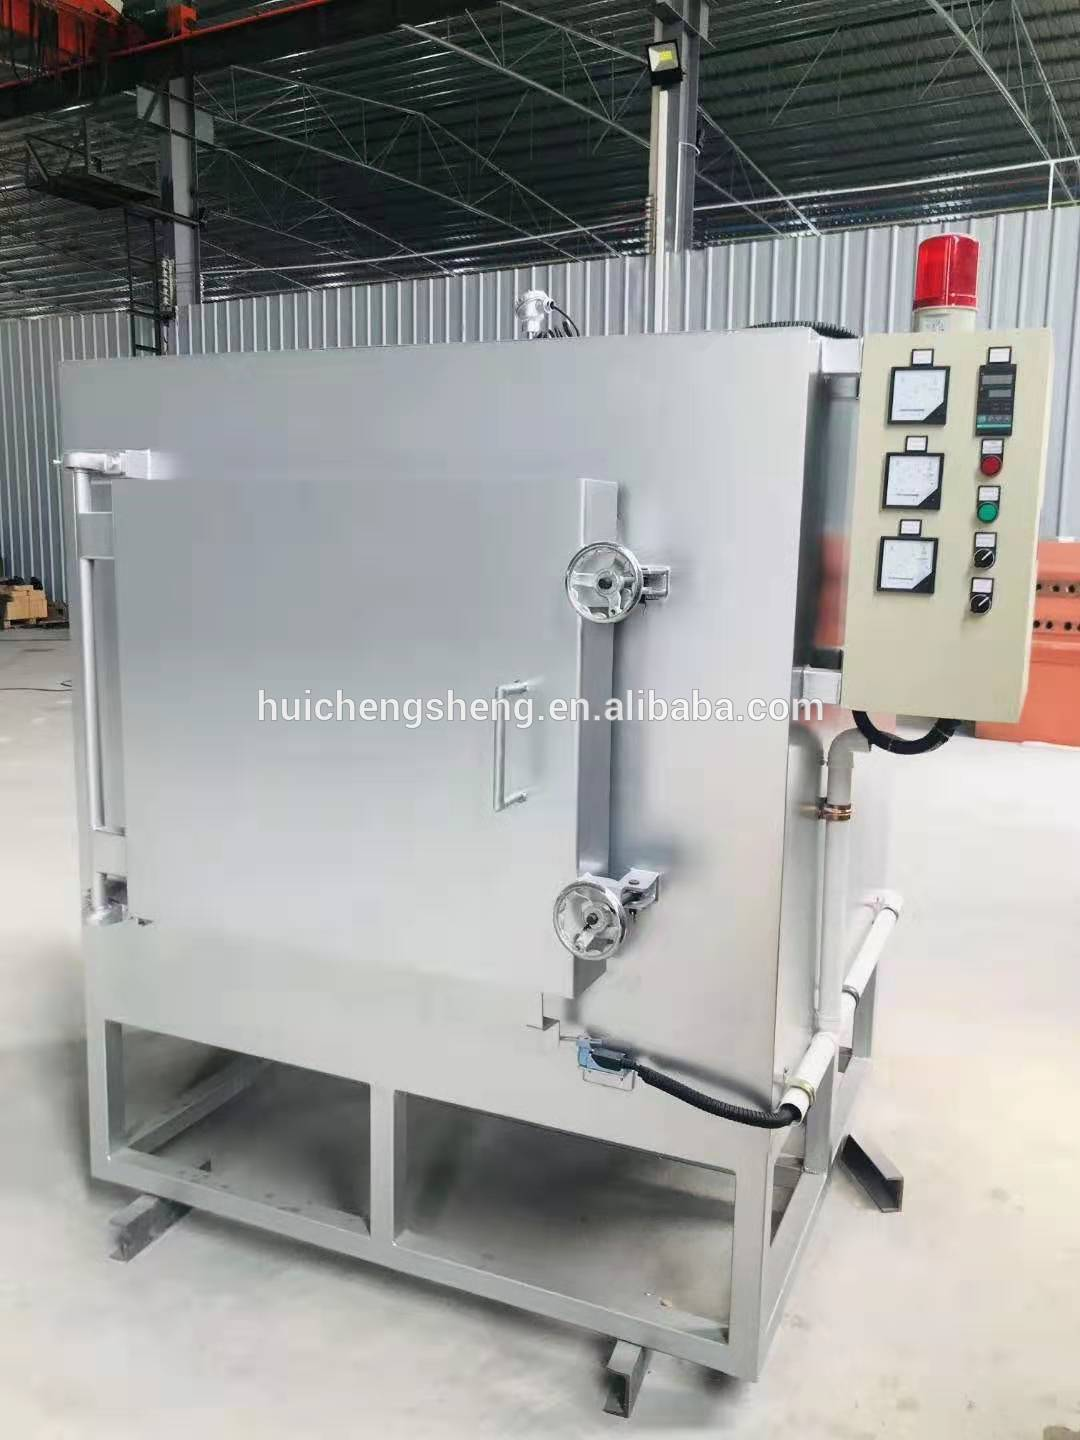 high temperature chamber type electrical resistance furnace